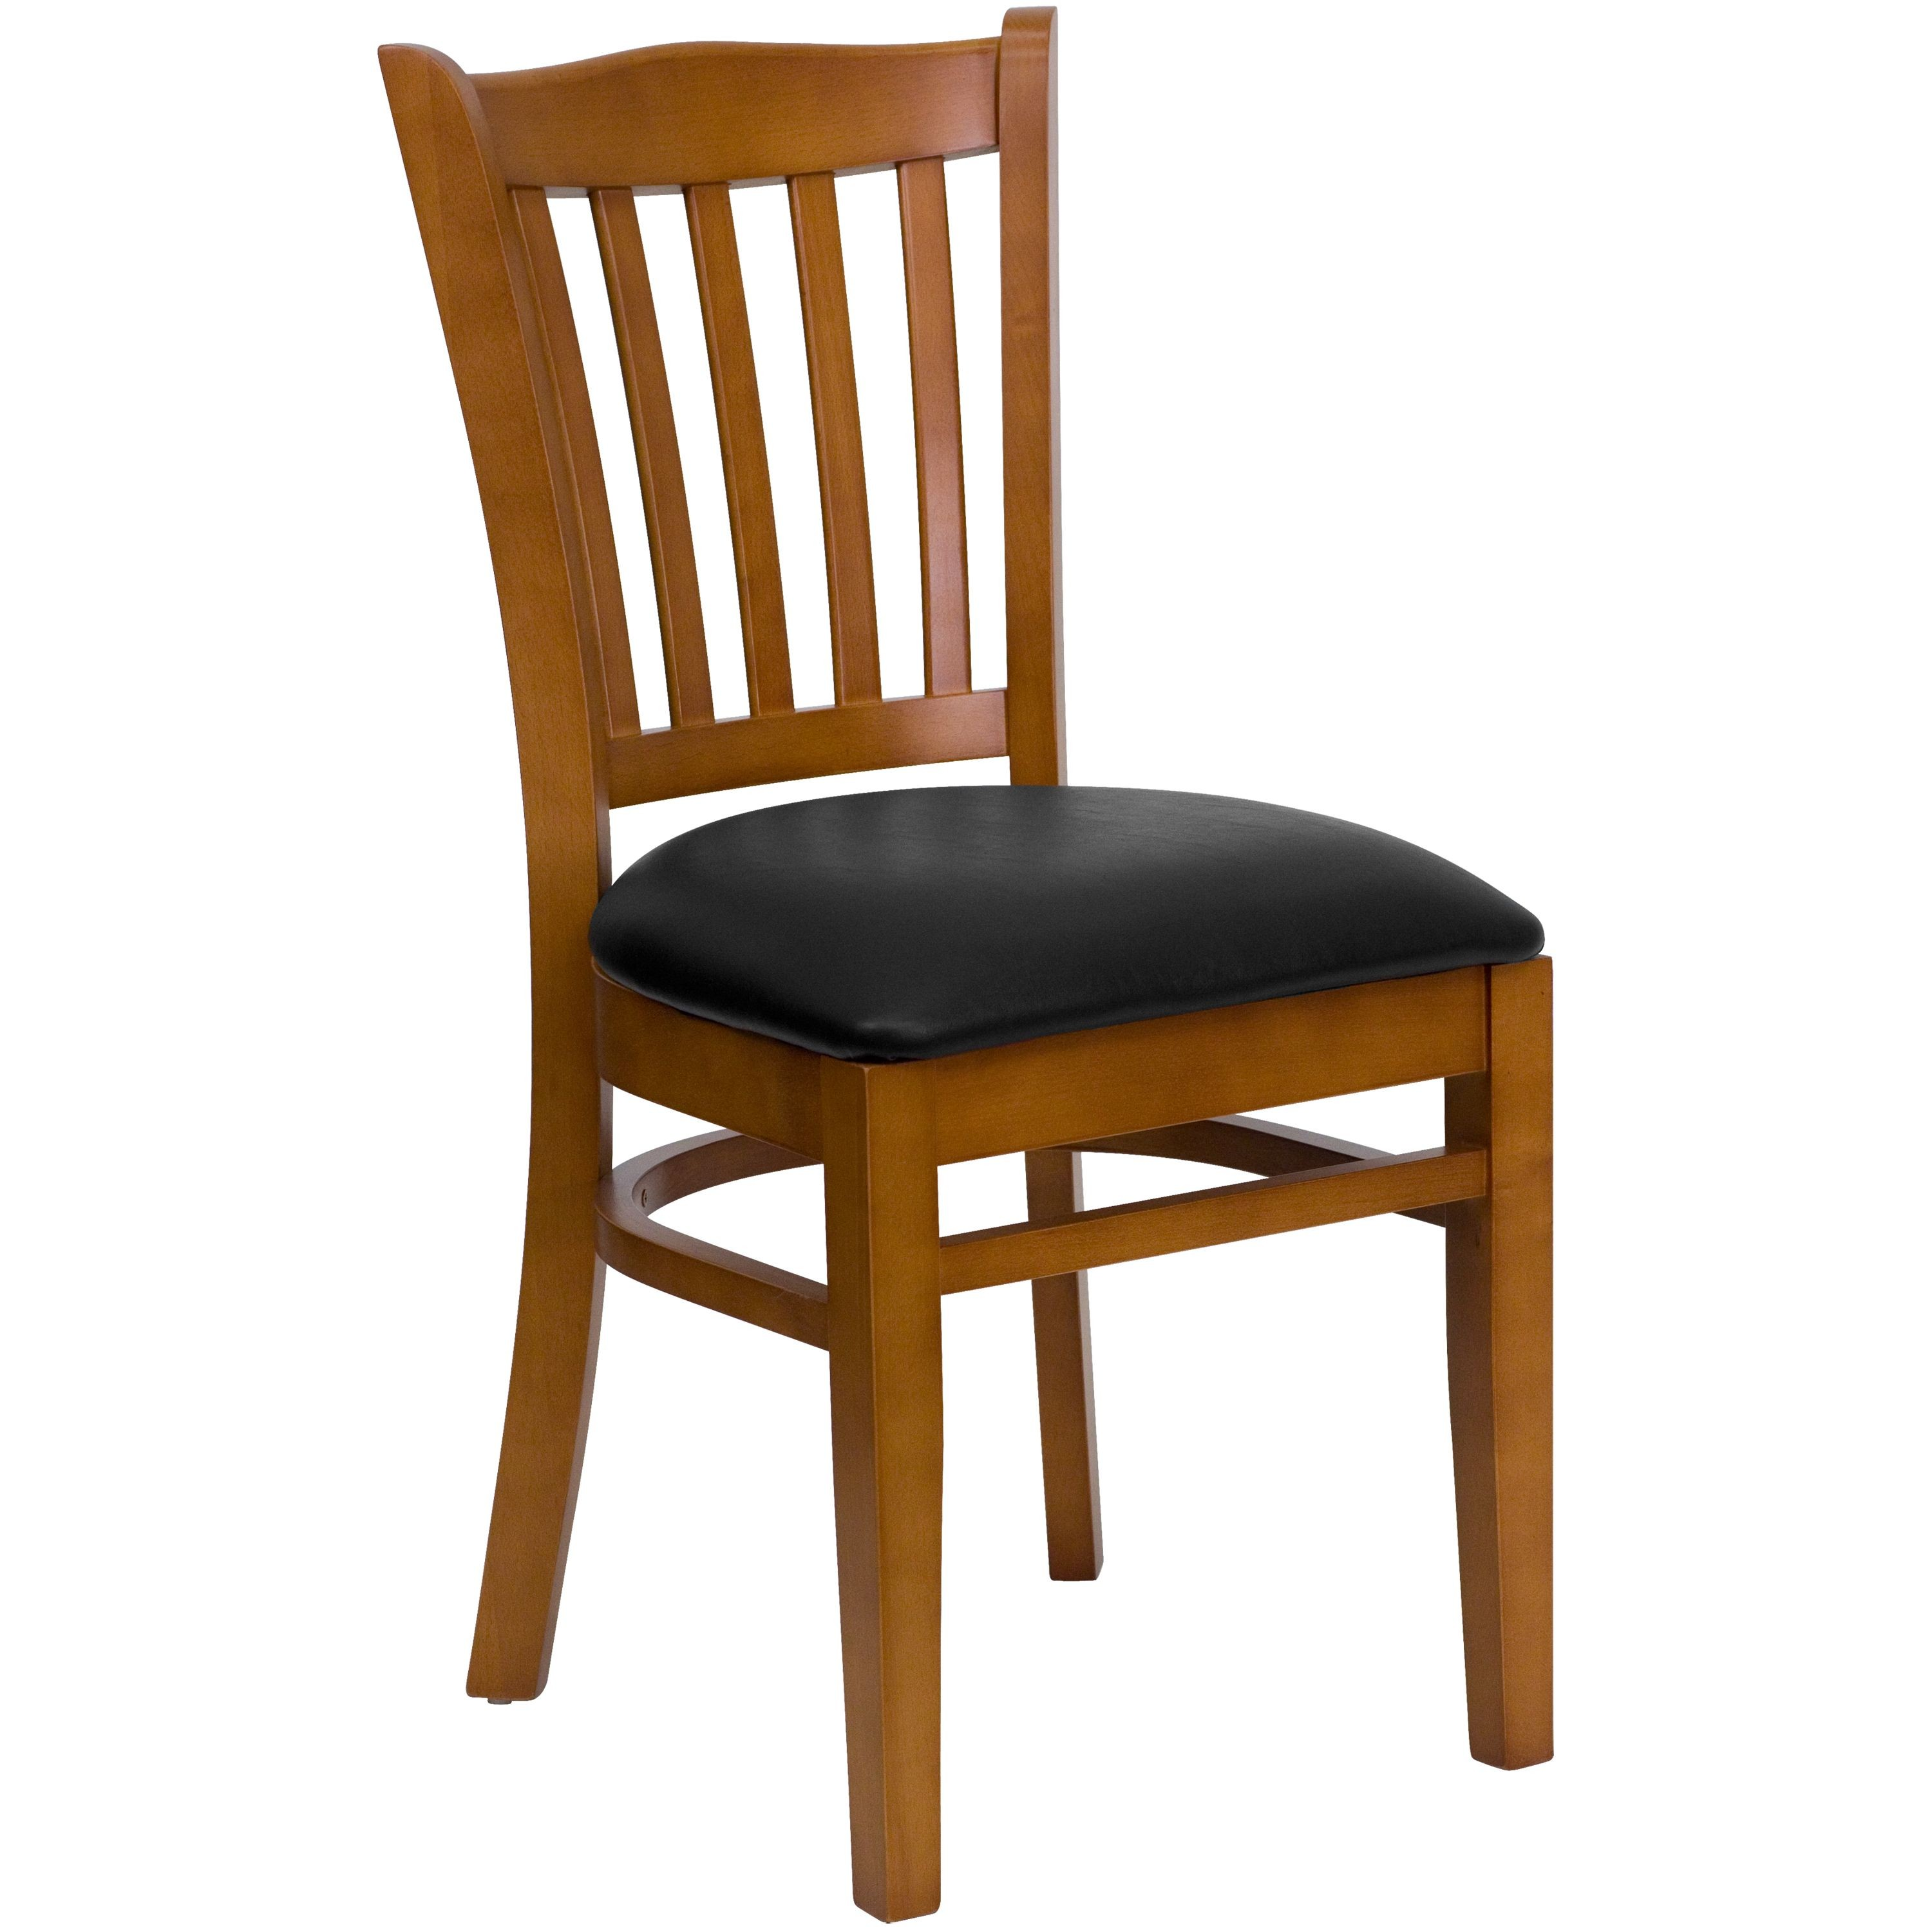 Vertical Slat Back Cherry Wood Chair with Black Vinyl Seat